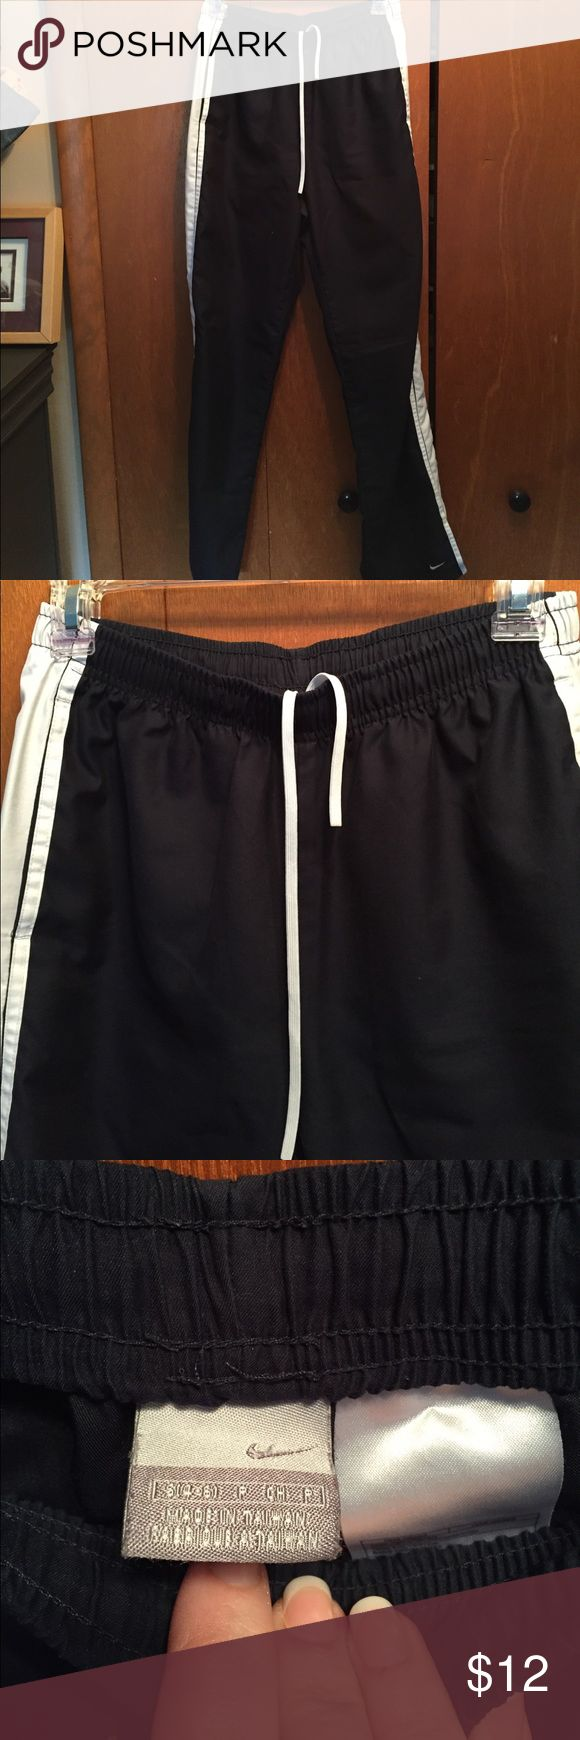 Nike Running Pants Navy Sz S 4-6 Good Cond Nike Running Pants Navy Sz S 4-6 Good Cond - a few pain splatter spots please see pictures, no snags or pilling, drawstring pulls Nike Pants Track Pants & Joggers